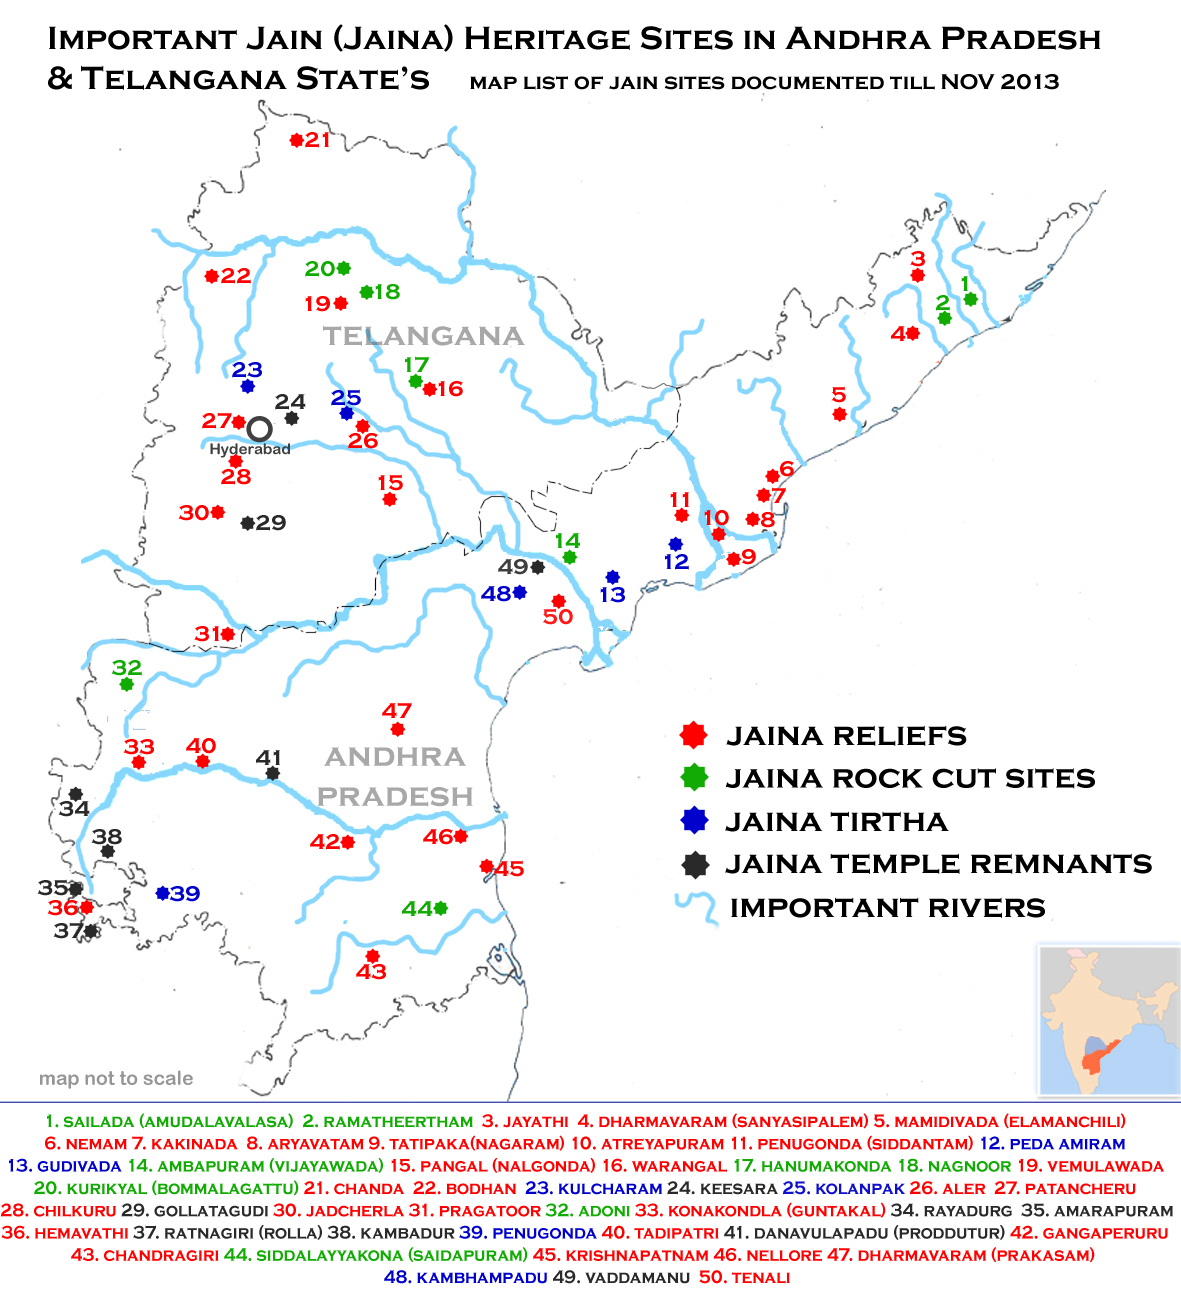 FileJain Heritage Sites Map Of Andhra Pradeshjpg Wikimedia Commons - Adoni map